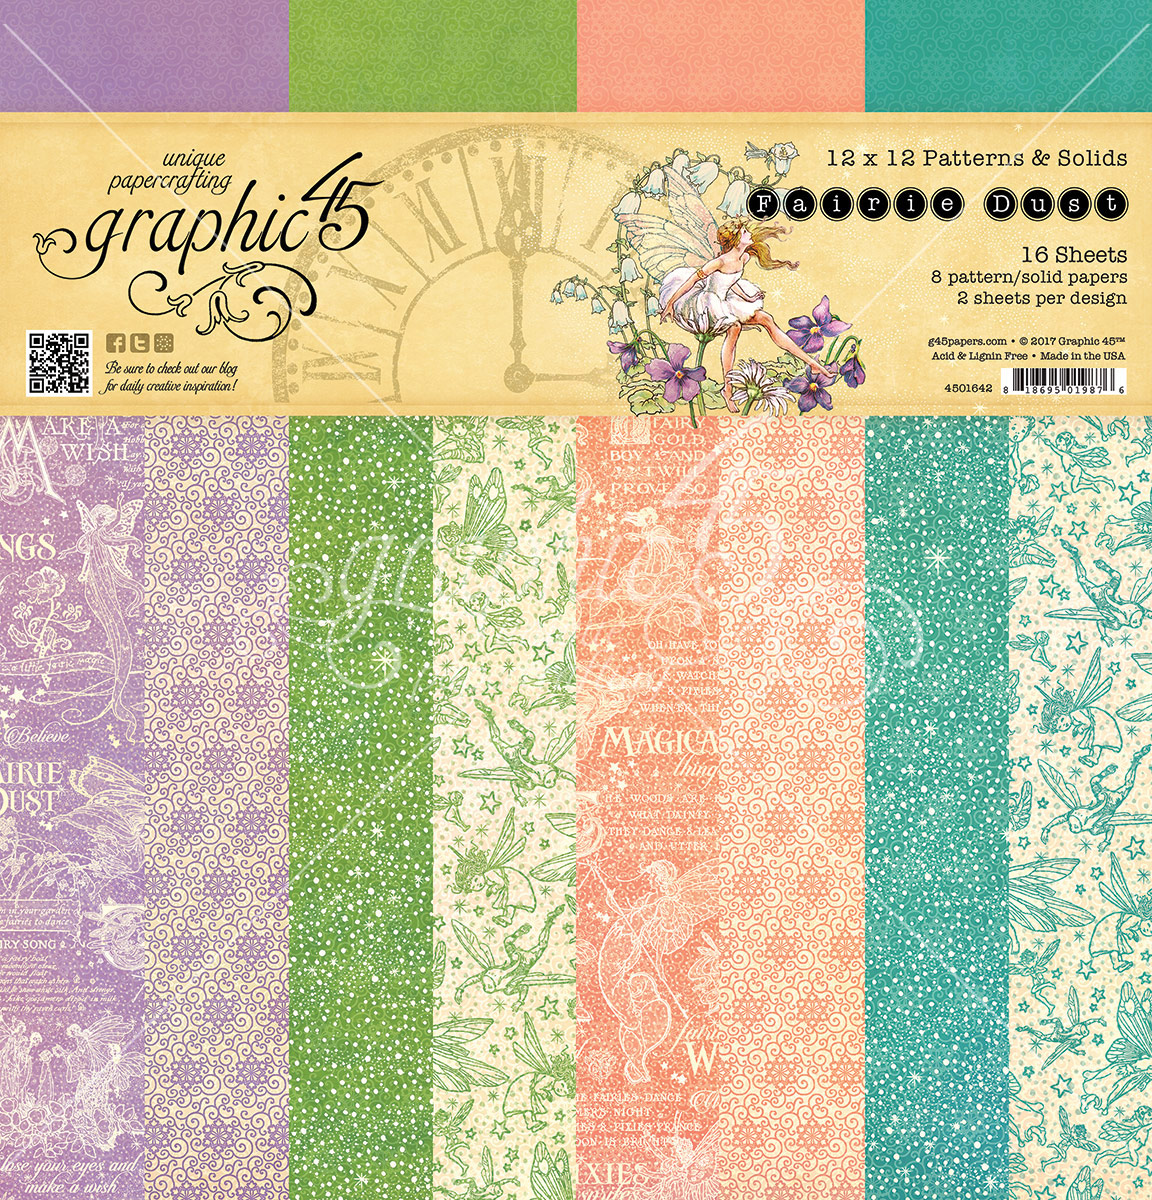 fairie-dust-patterns-solids-pad-cvr.jpg